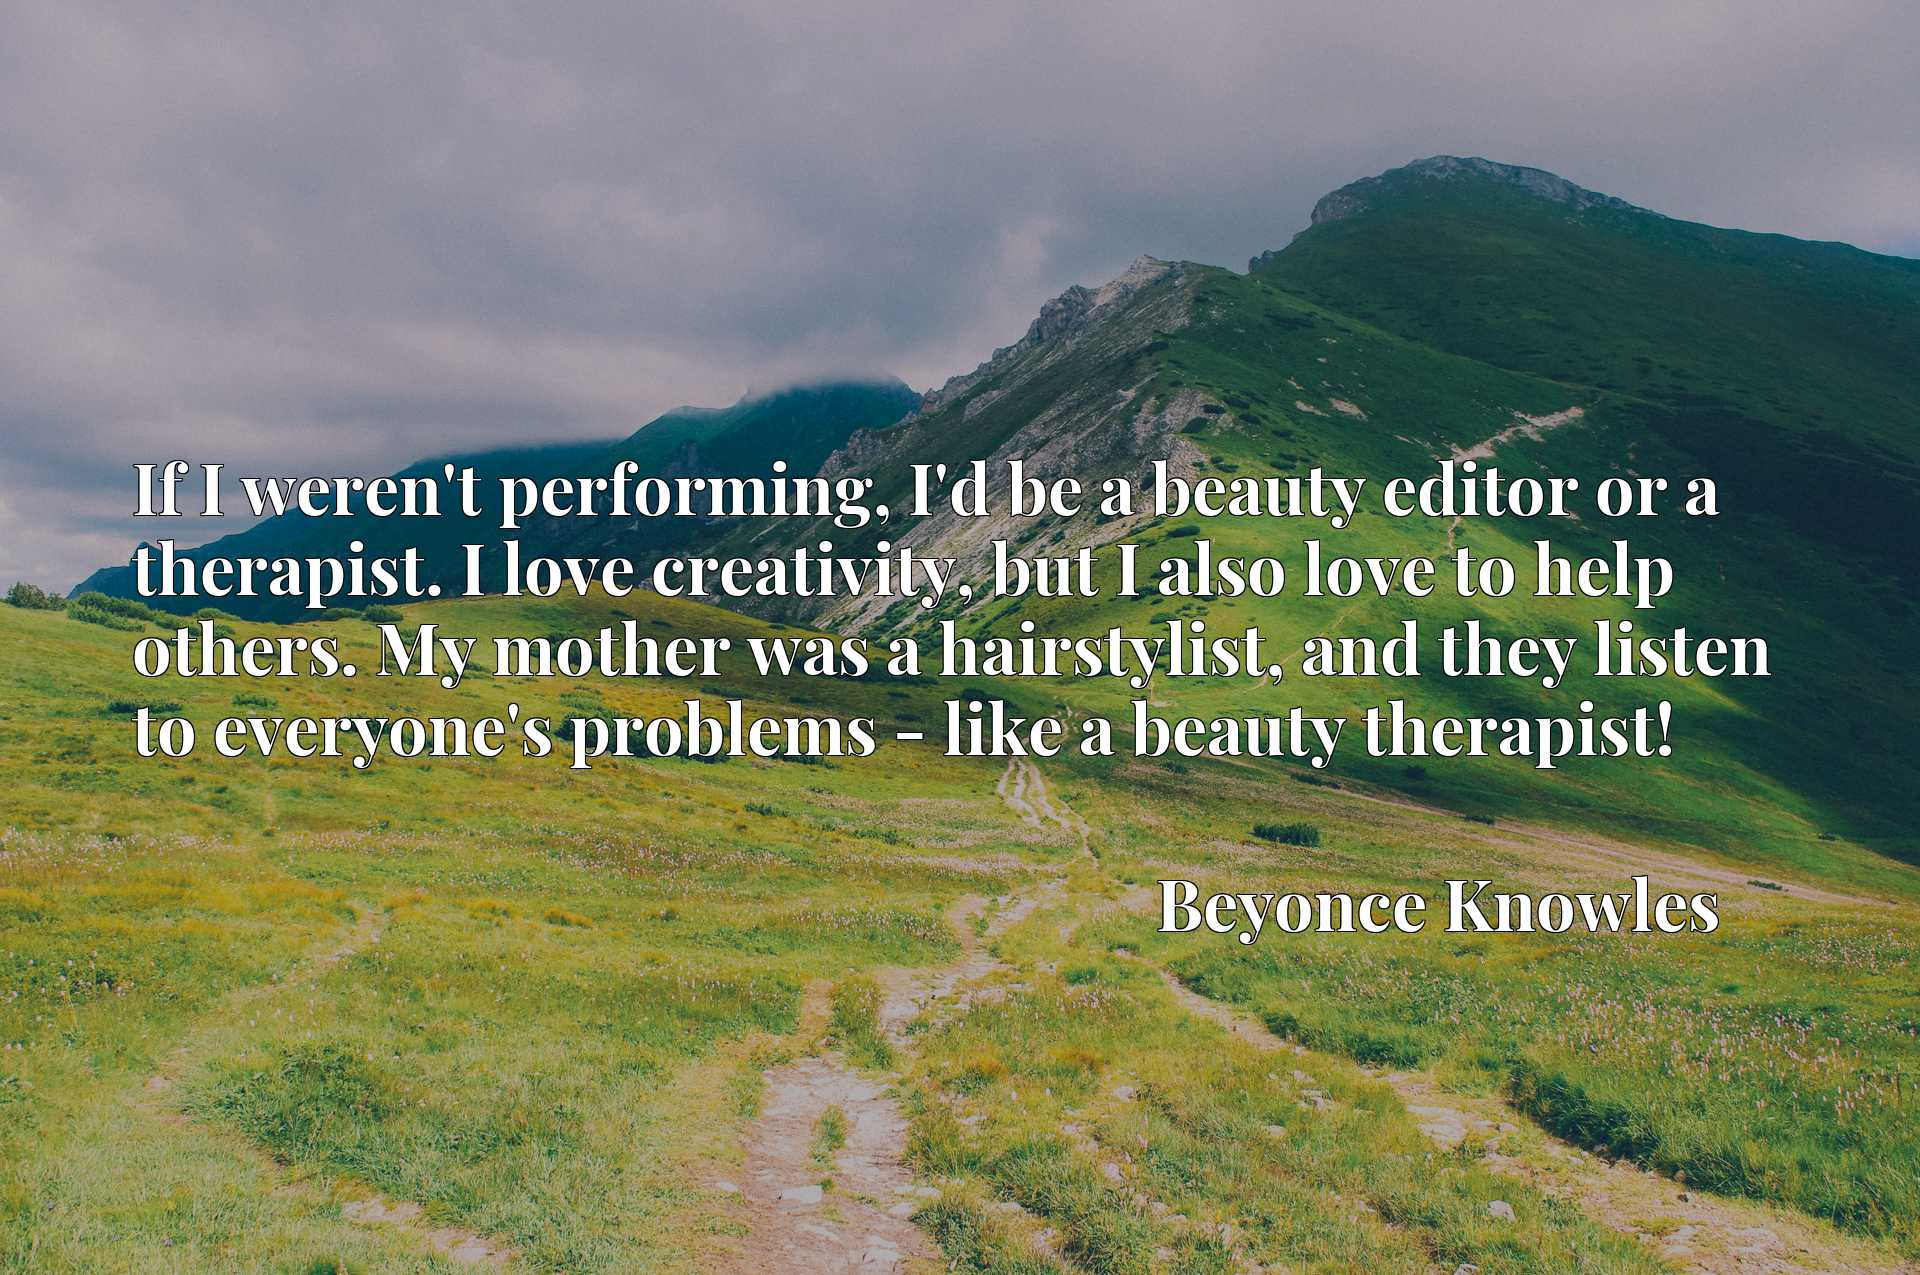 If I weren't performing, I'd be a beauty editor or a therapist. I love creativity, but I also love to help others. My mother was a hairstylist, and they listen to everyone's problems - like a beauty therapist!